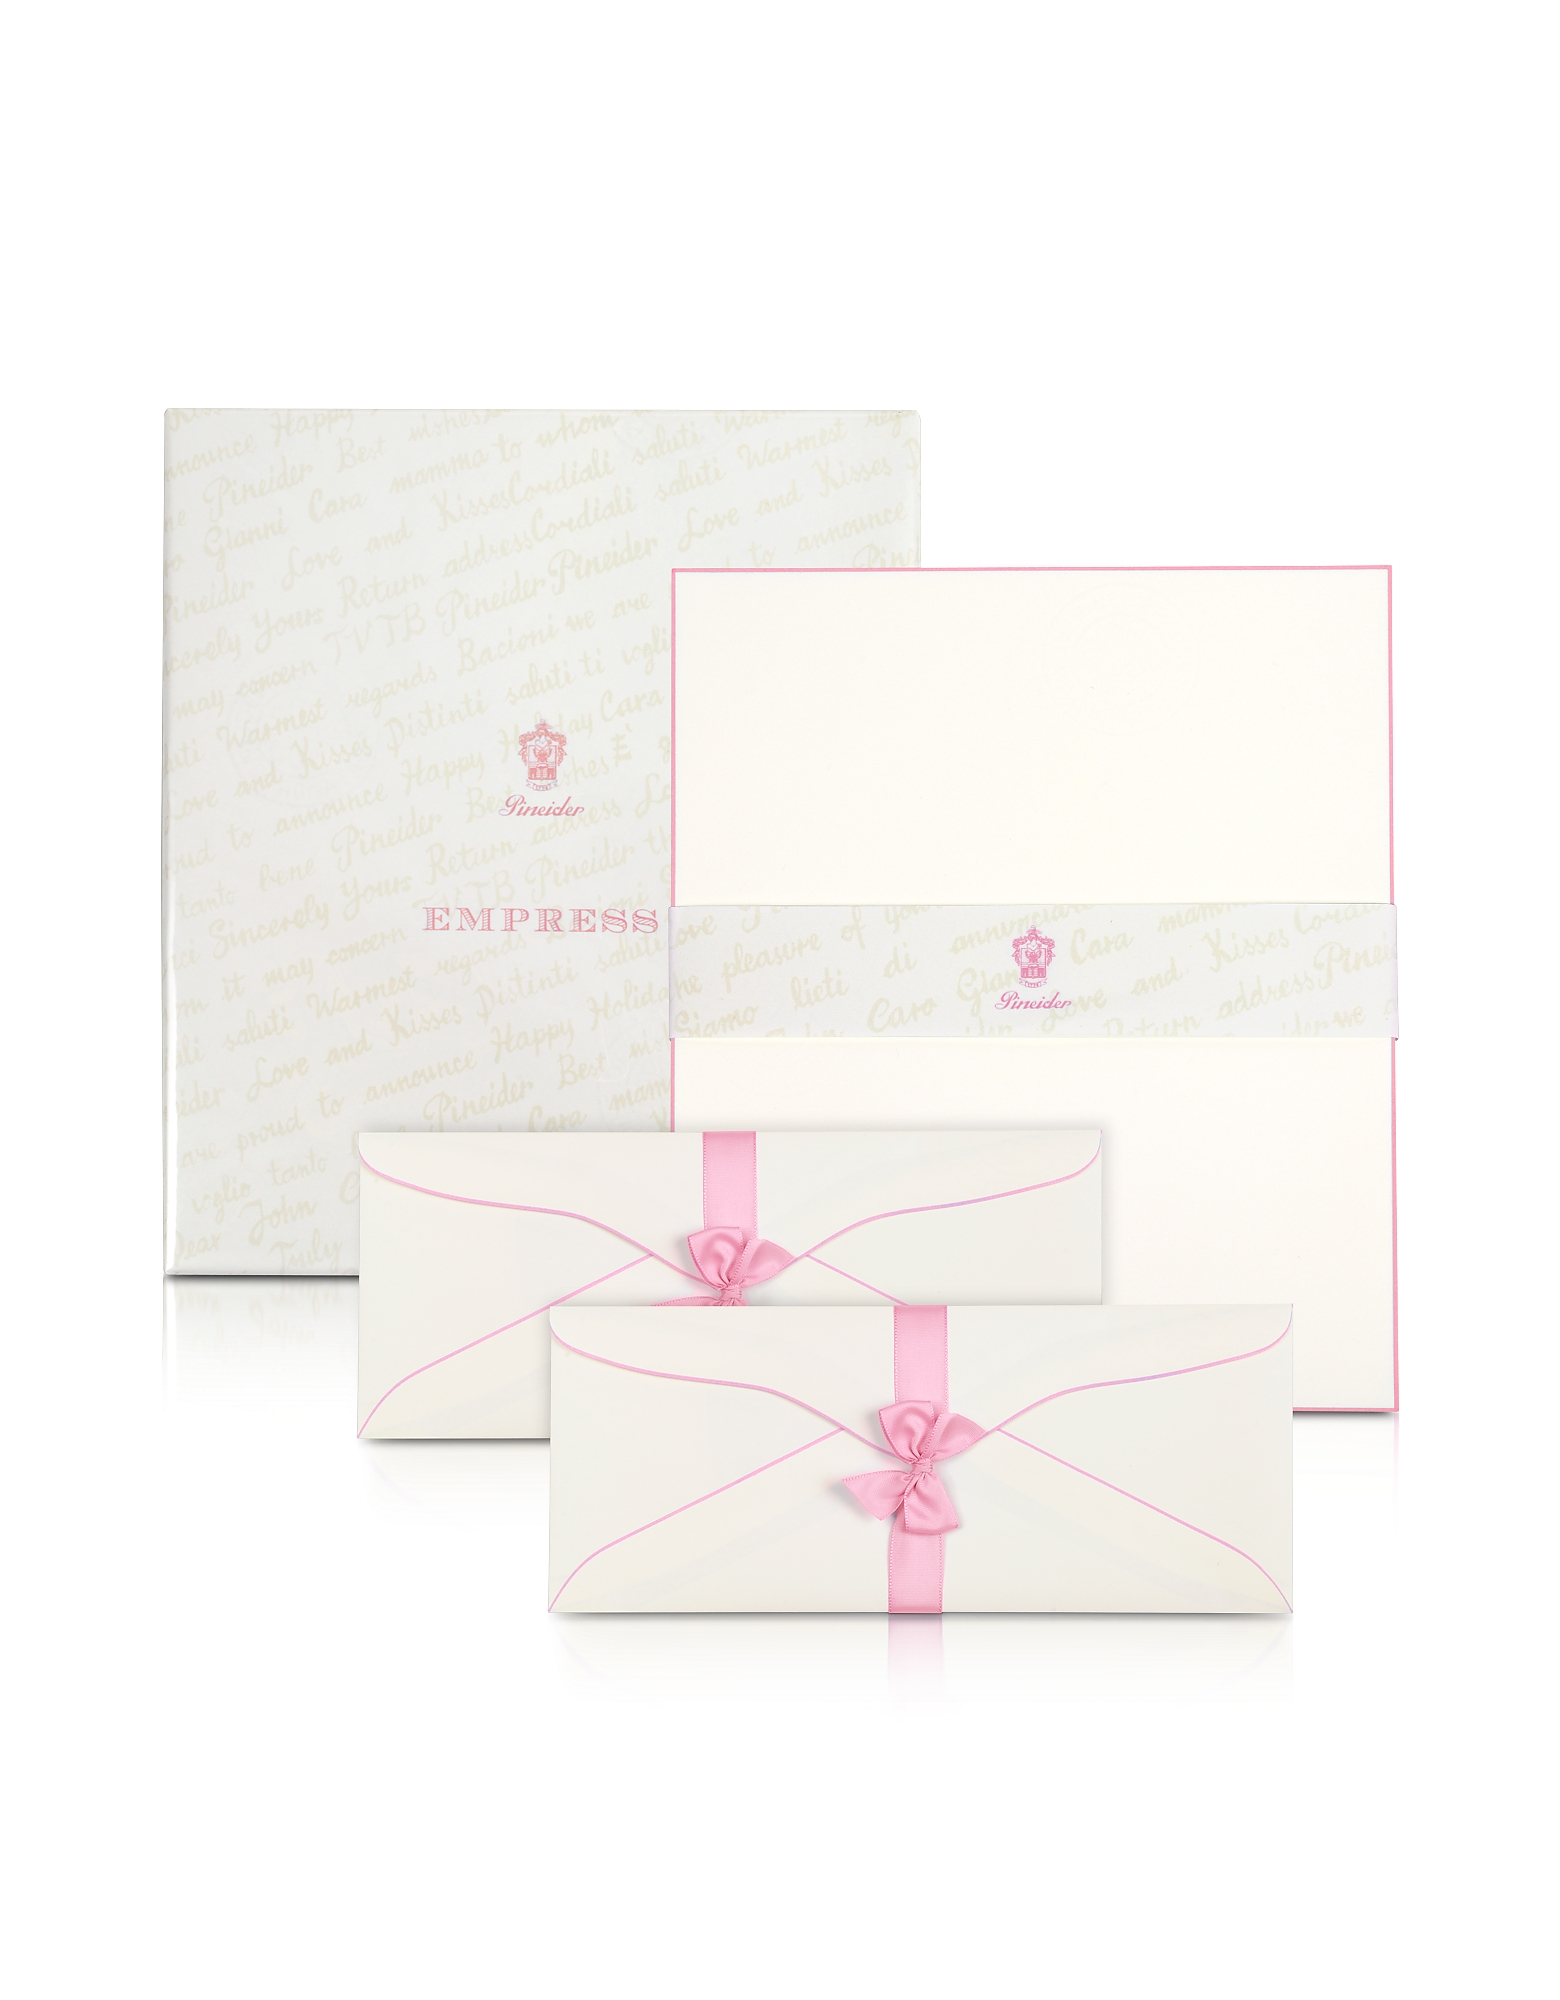 Pineider Desk Accessories, Empress - 50 Sheets White Letter with Handpainted Border